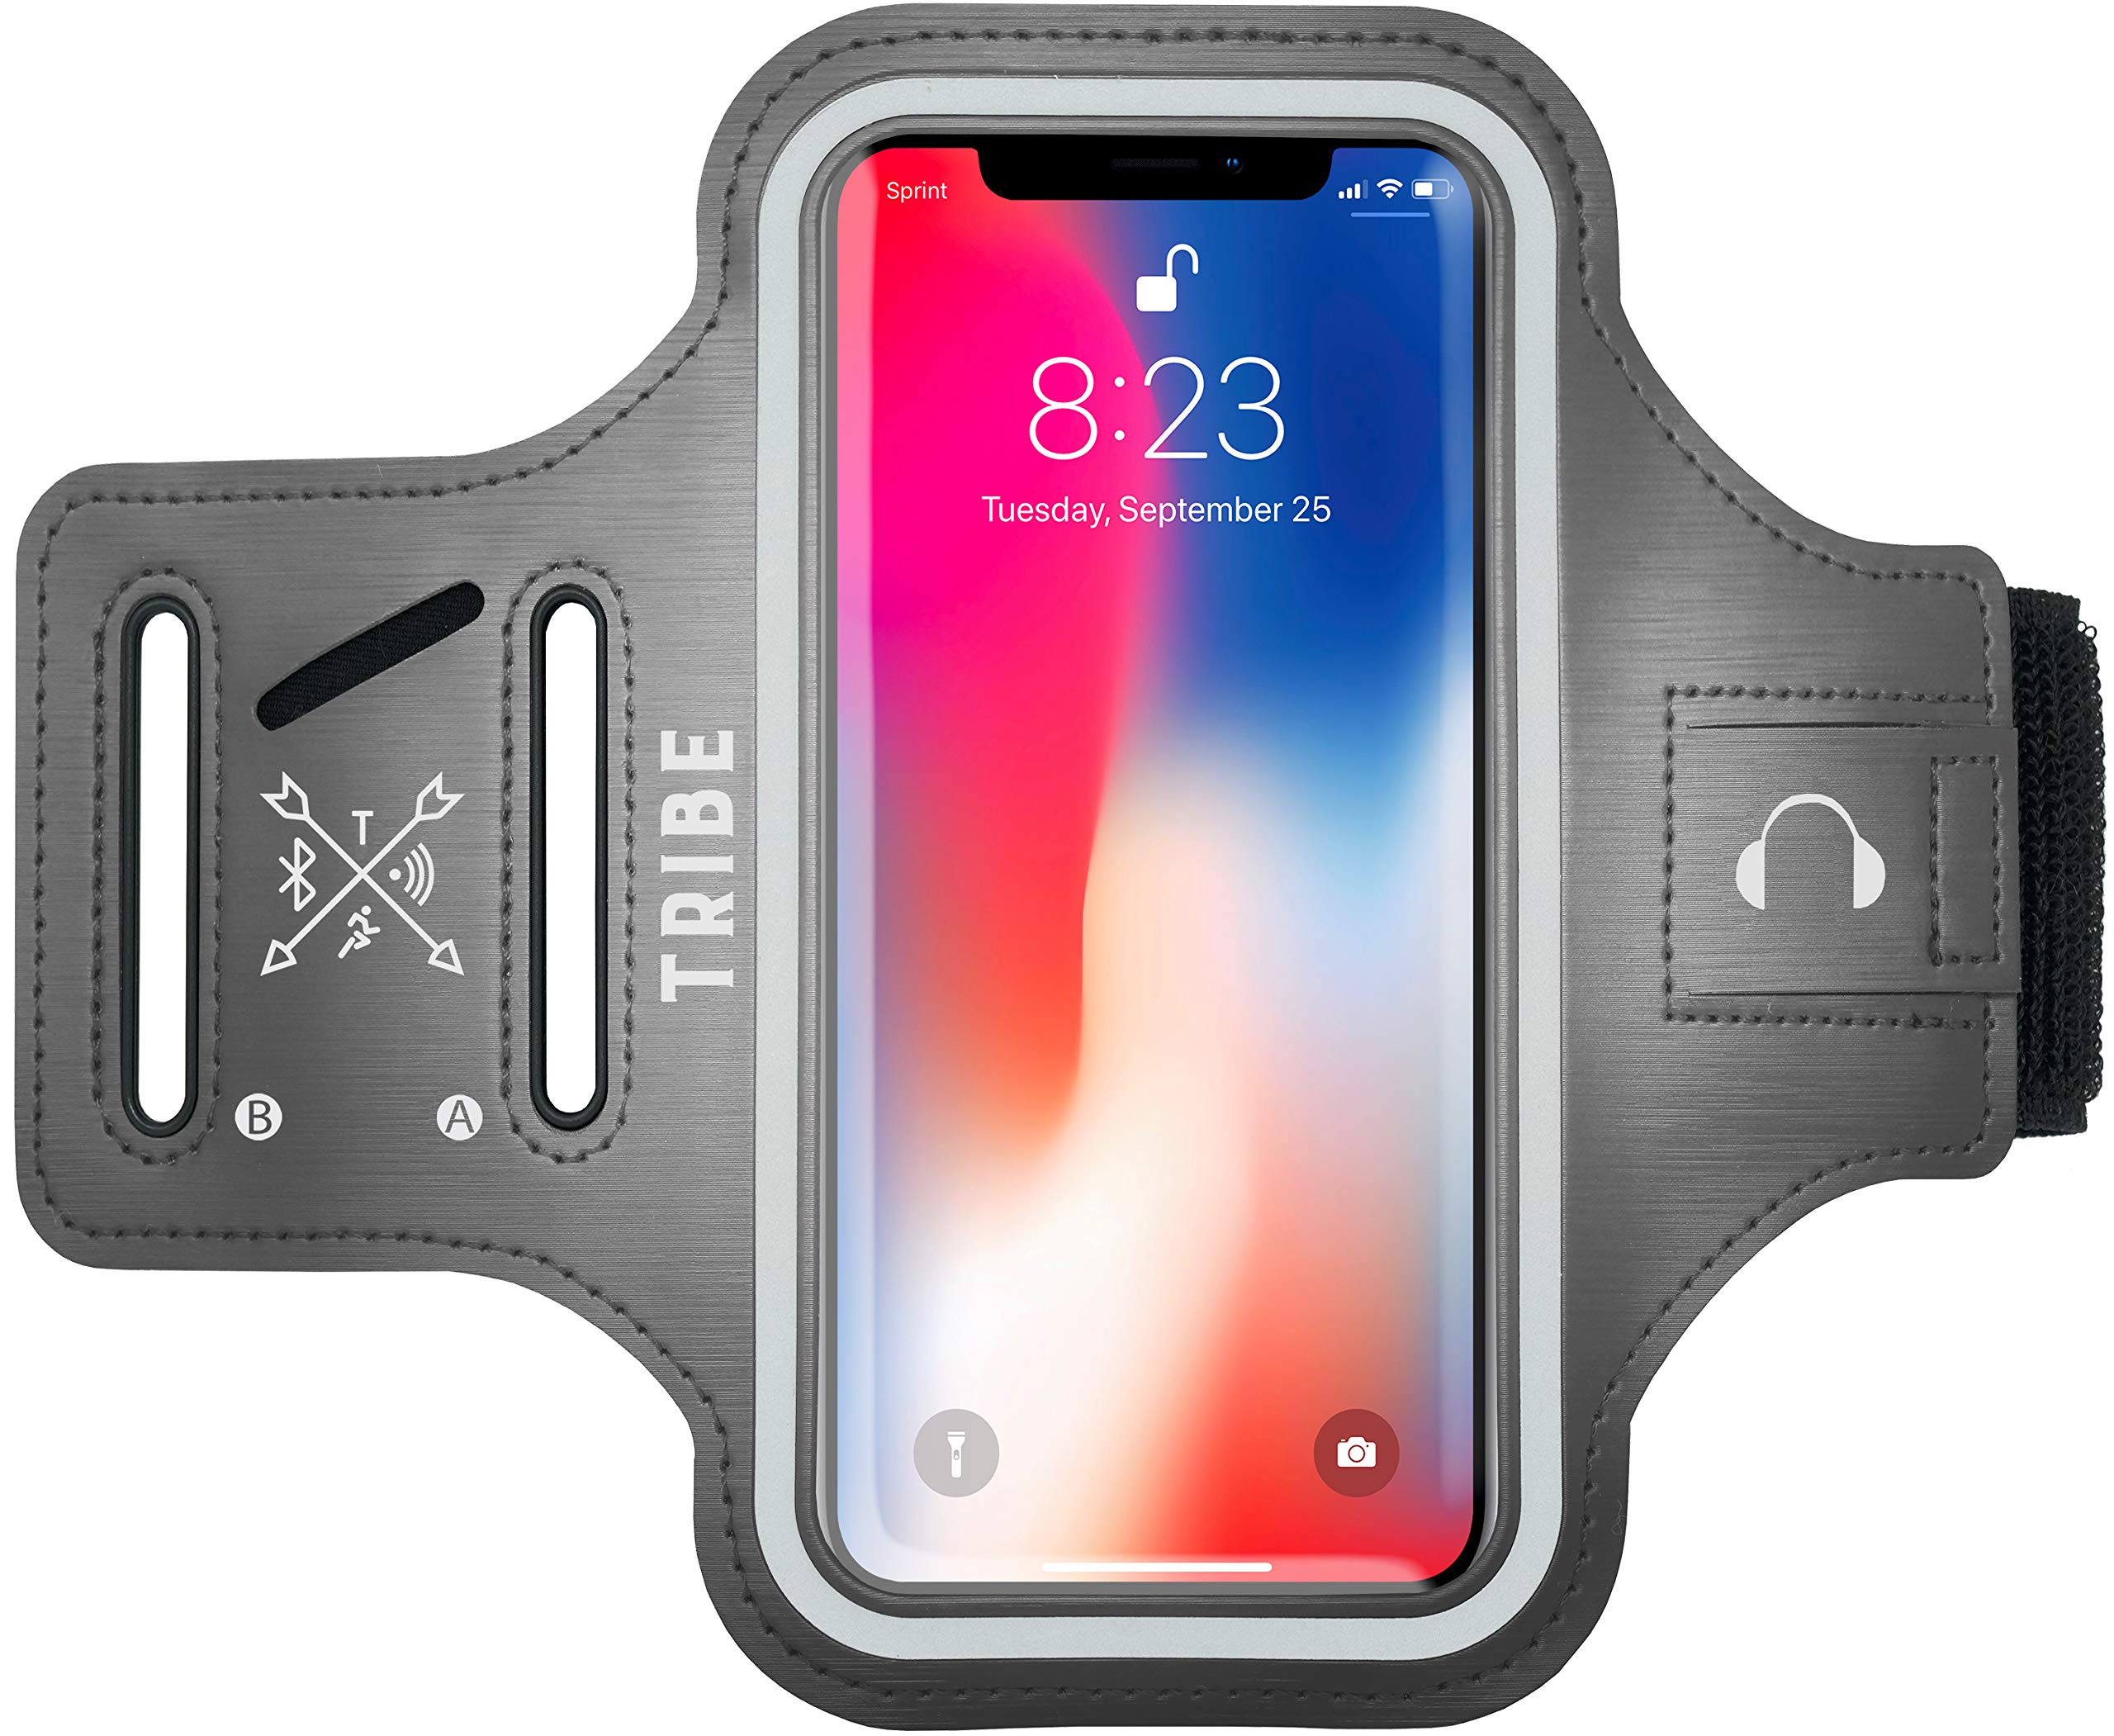 Water Resistant Cell Phone Armband- 5.7 Inch Case for iPhone 7 Plus, 6/6S Plus, S8, S7/S6 Edge, PIxel XL, All Galaxy Note Phones - Adjustable Reflective Velcro Workout Band & Screen Protector, Grey by Tribe